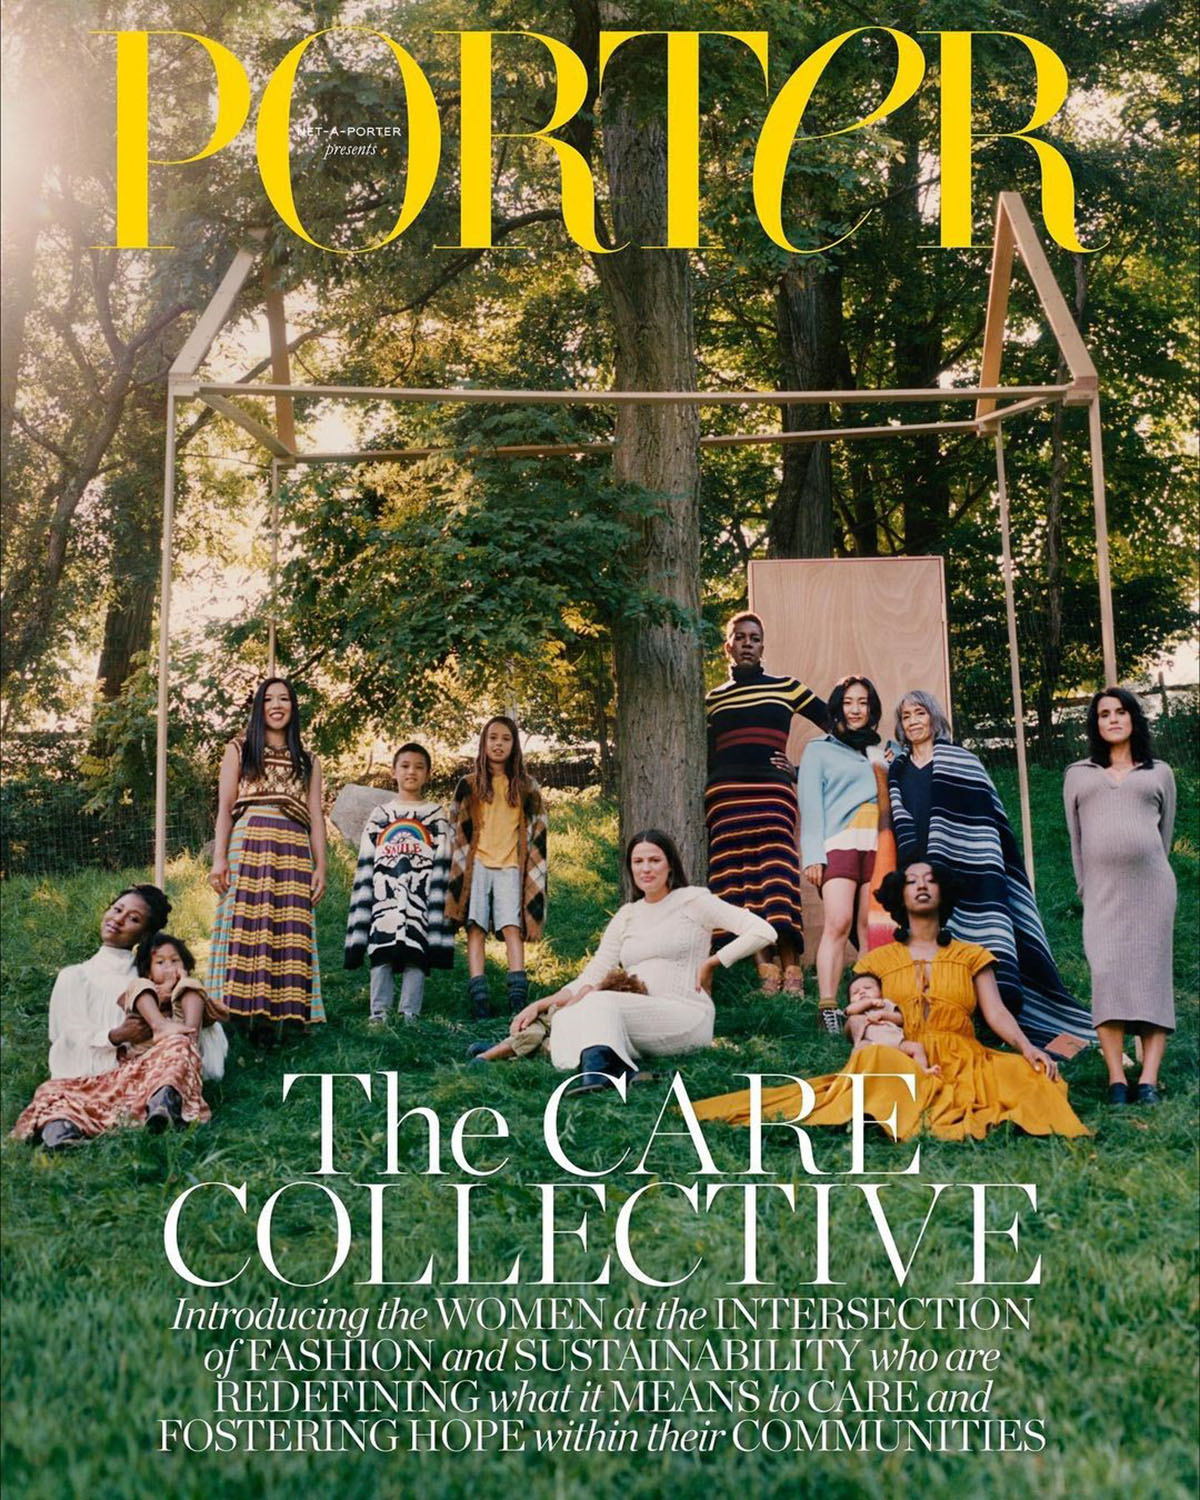 Porter Magazine August 23rd, 2021 covers by Camila Falquez